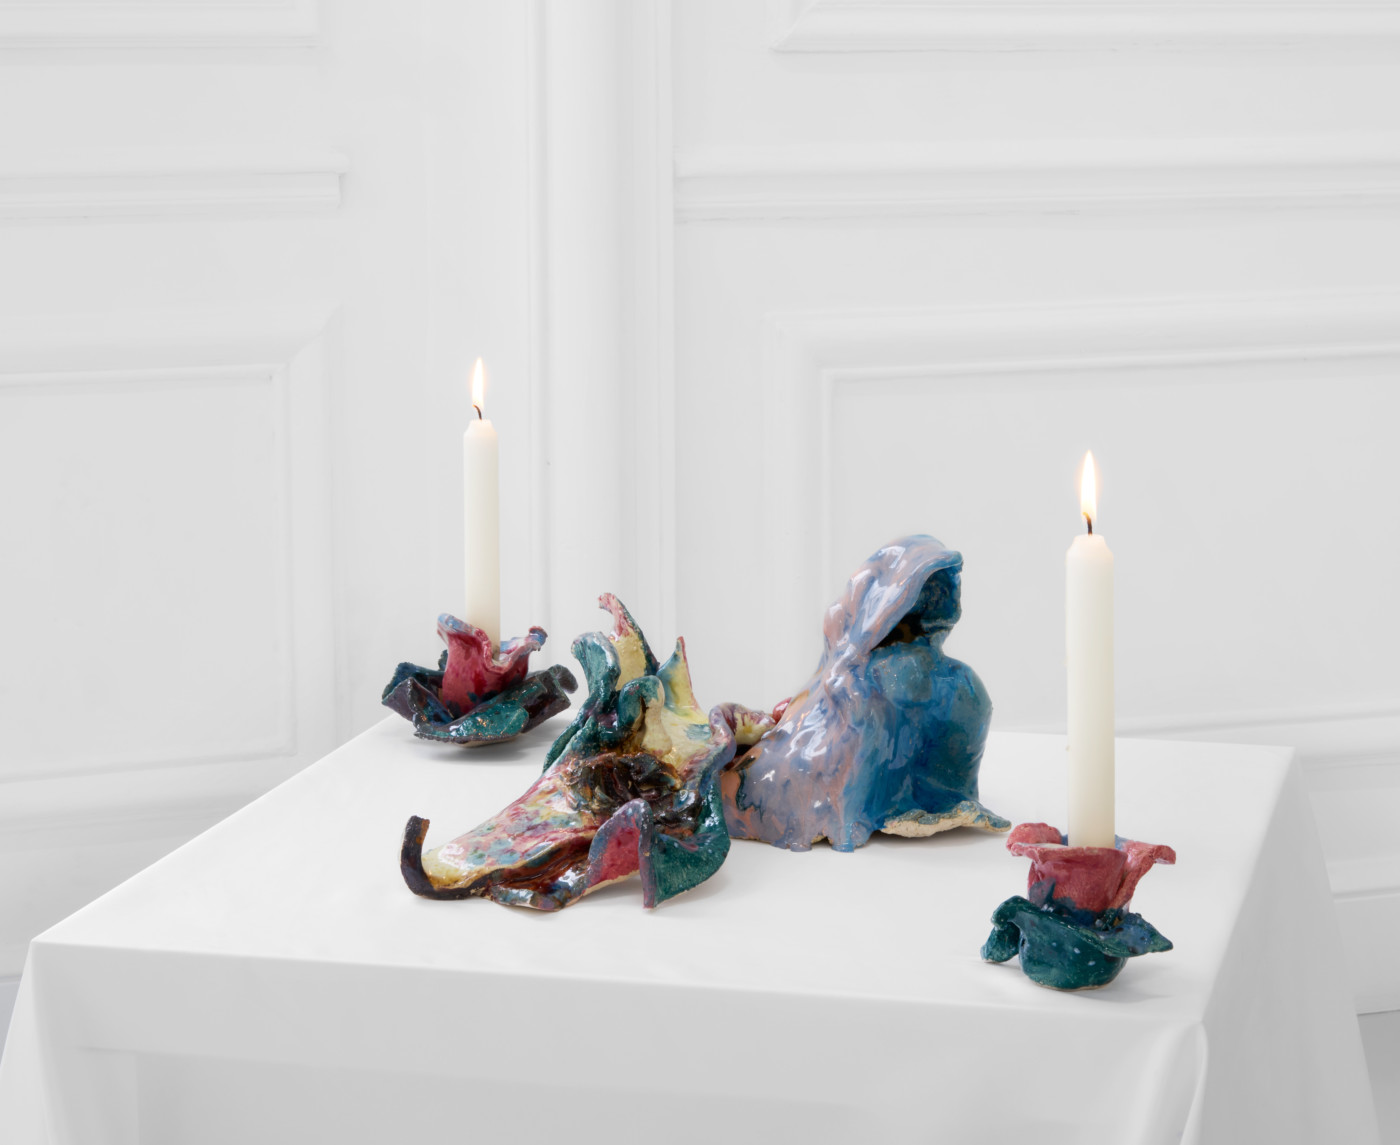 BORDERLINKING Nora Berman  1st Gen Props for Isis Unveiled Ouverture</I> (detail), 2020 Glazed ceramics, contact microphones, wax, silk, lavender Variable dimensions - High Art Gallery Paris